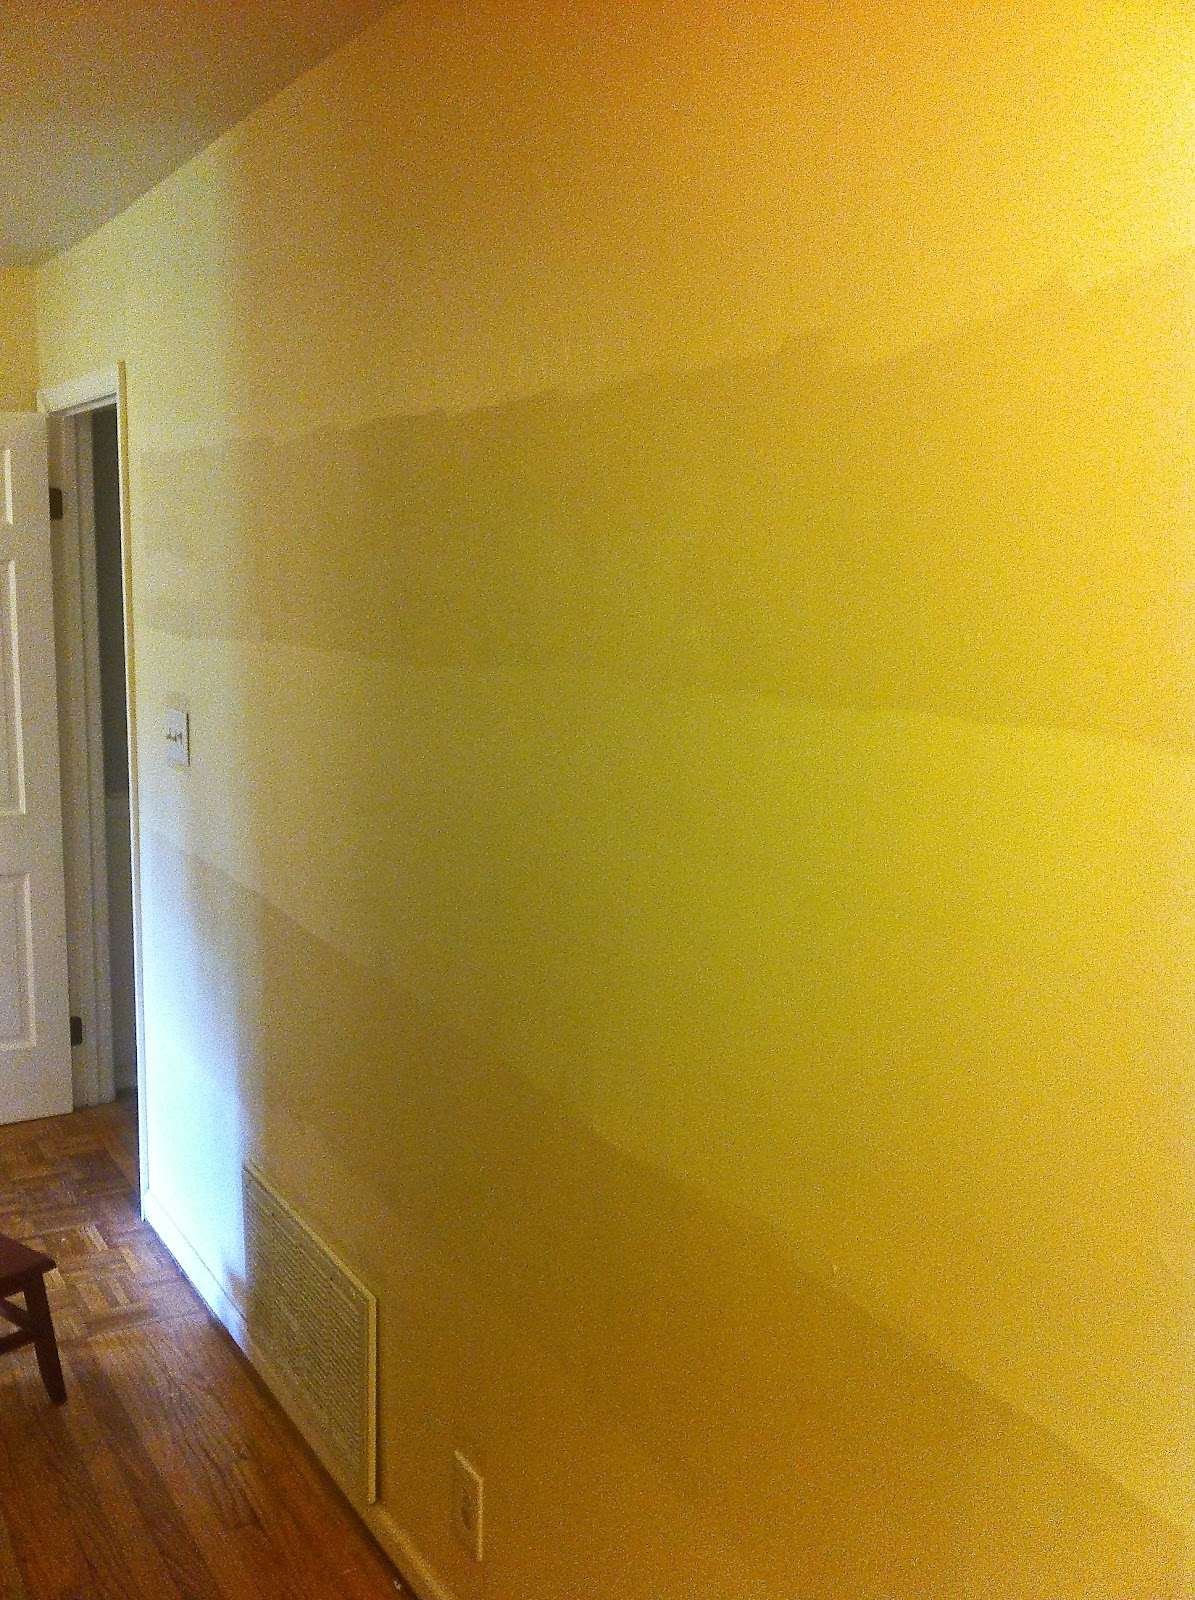 True North: horizontal stripe tone on tone (eggshell and gloss) paint